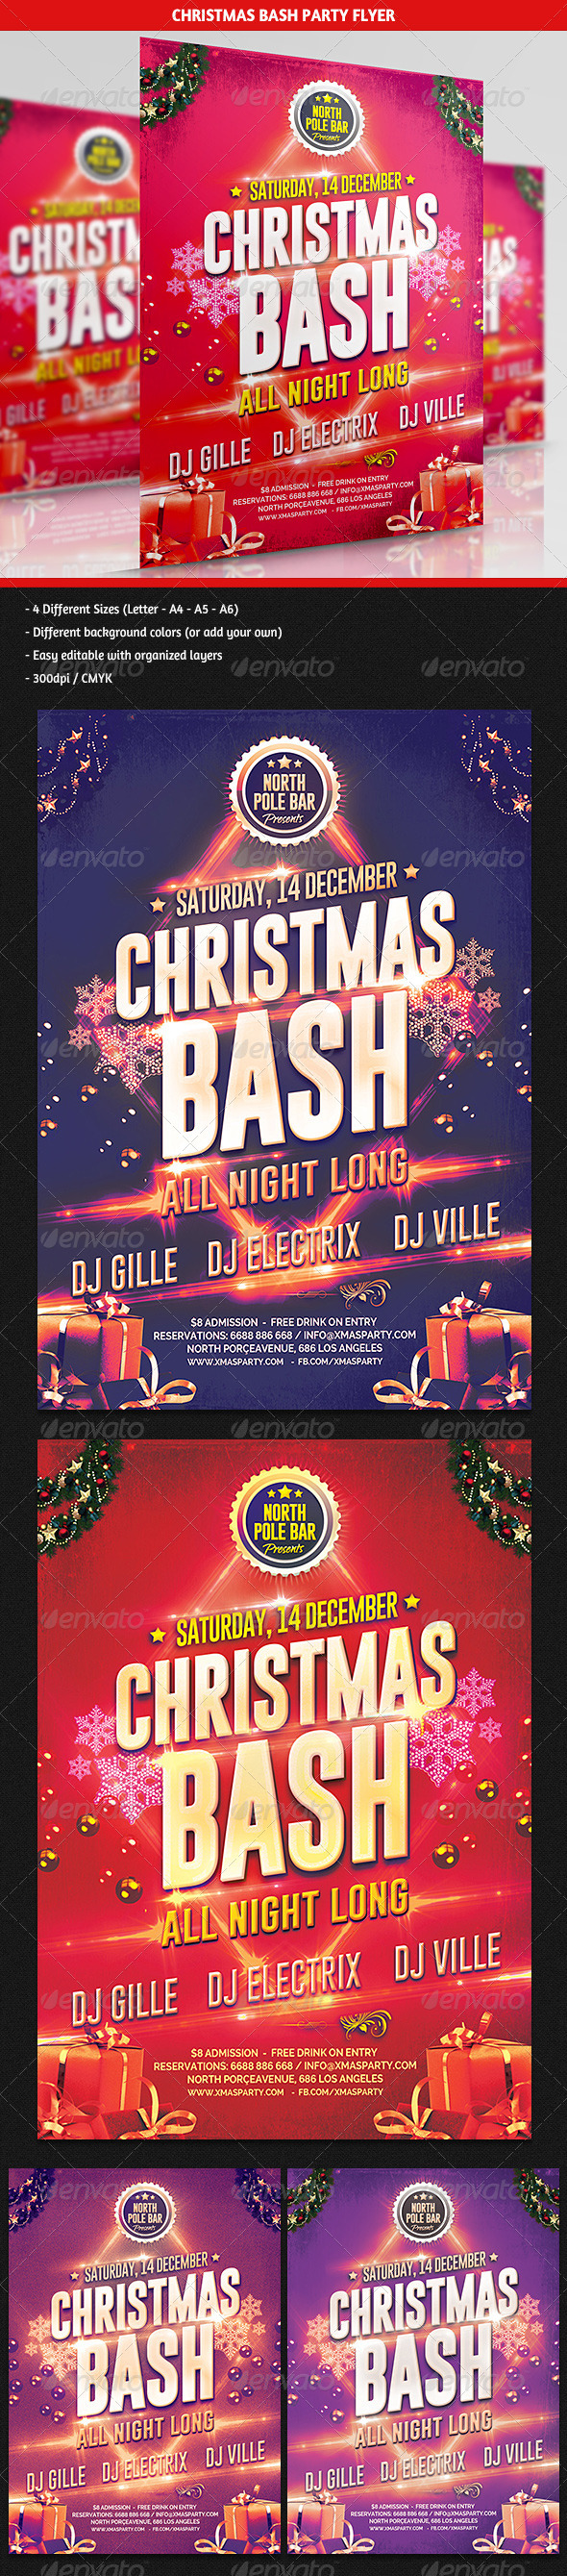 GraphicRiver Christmas Bash Party Flyer 6109201